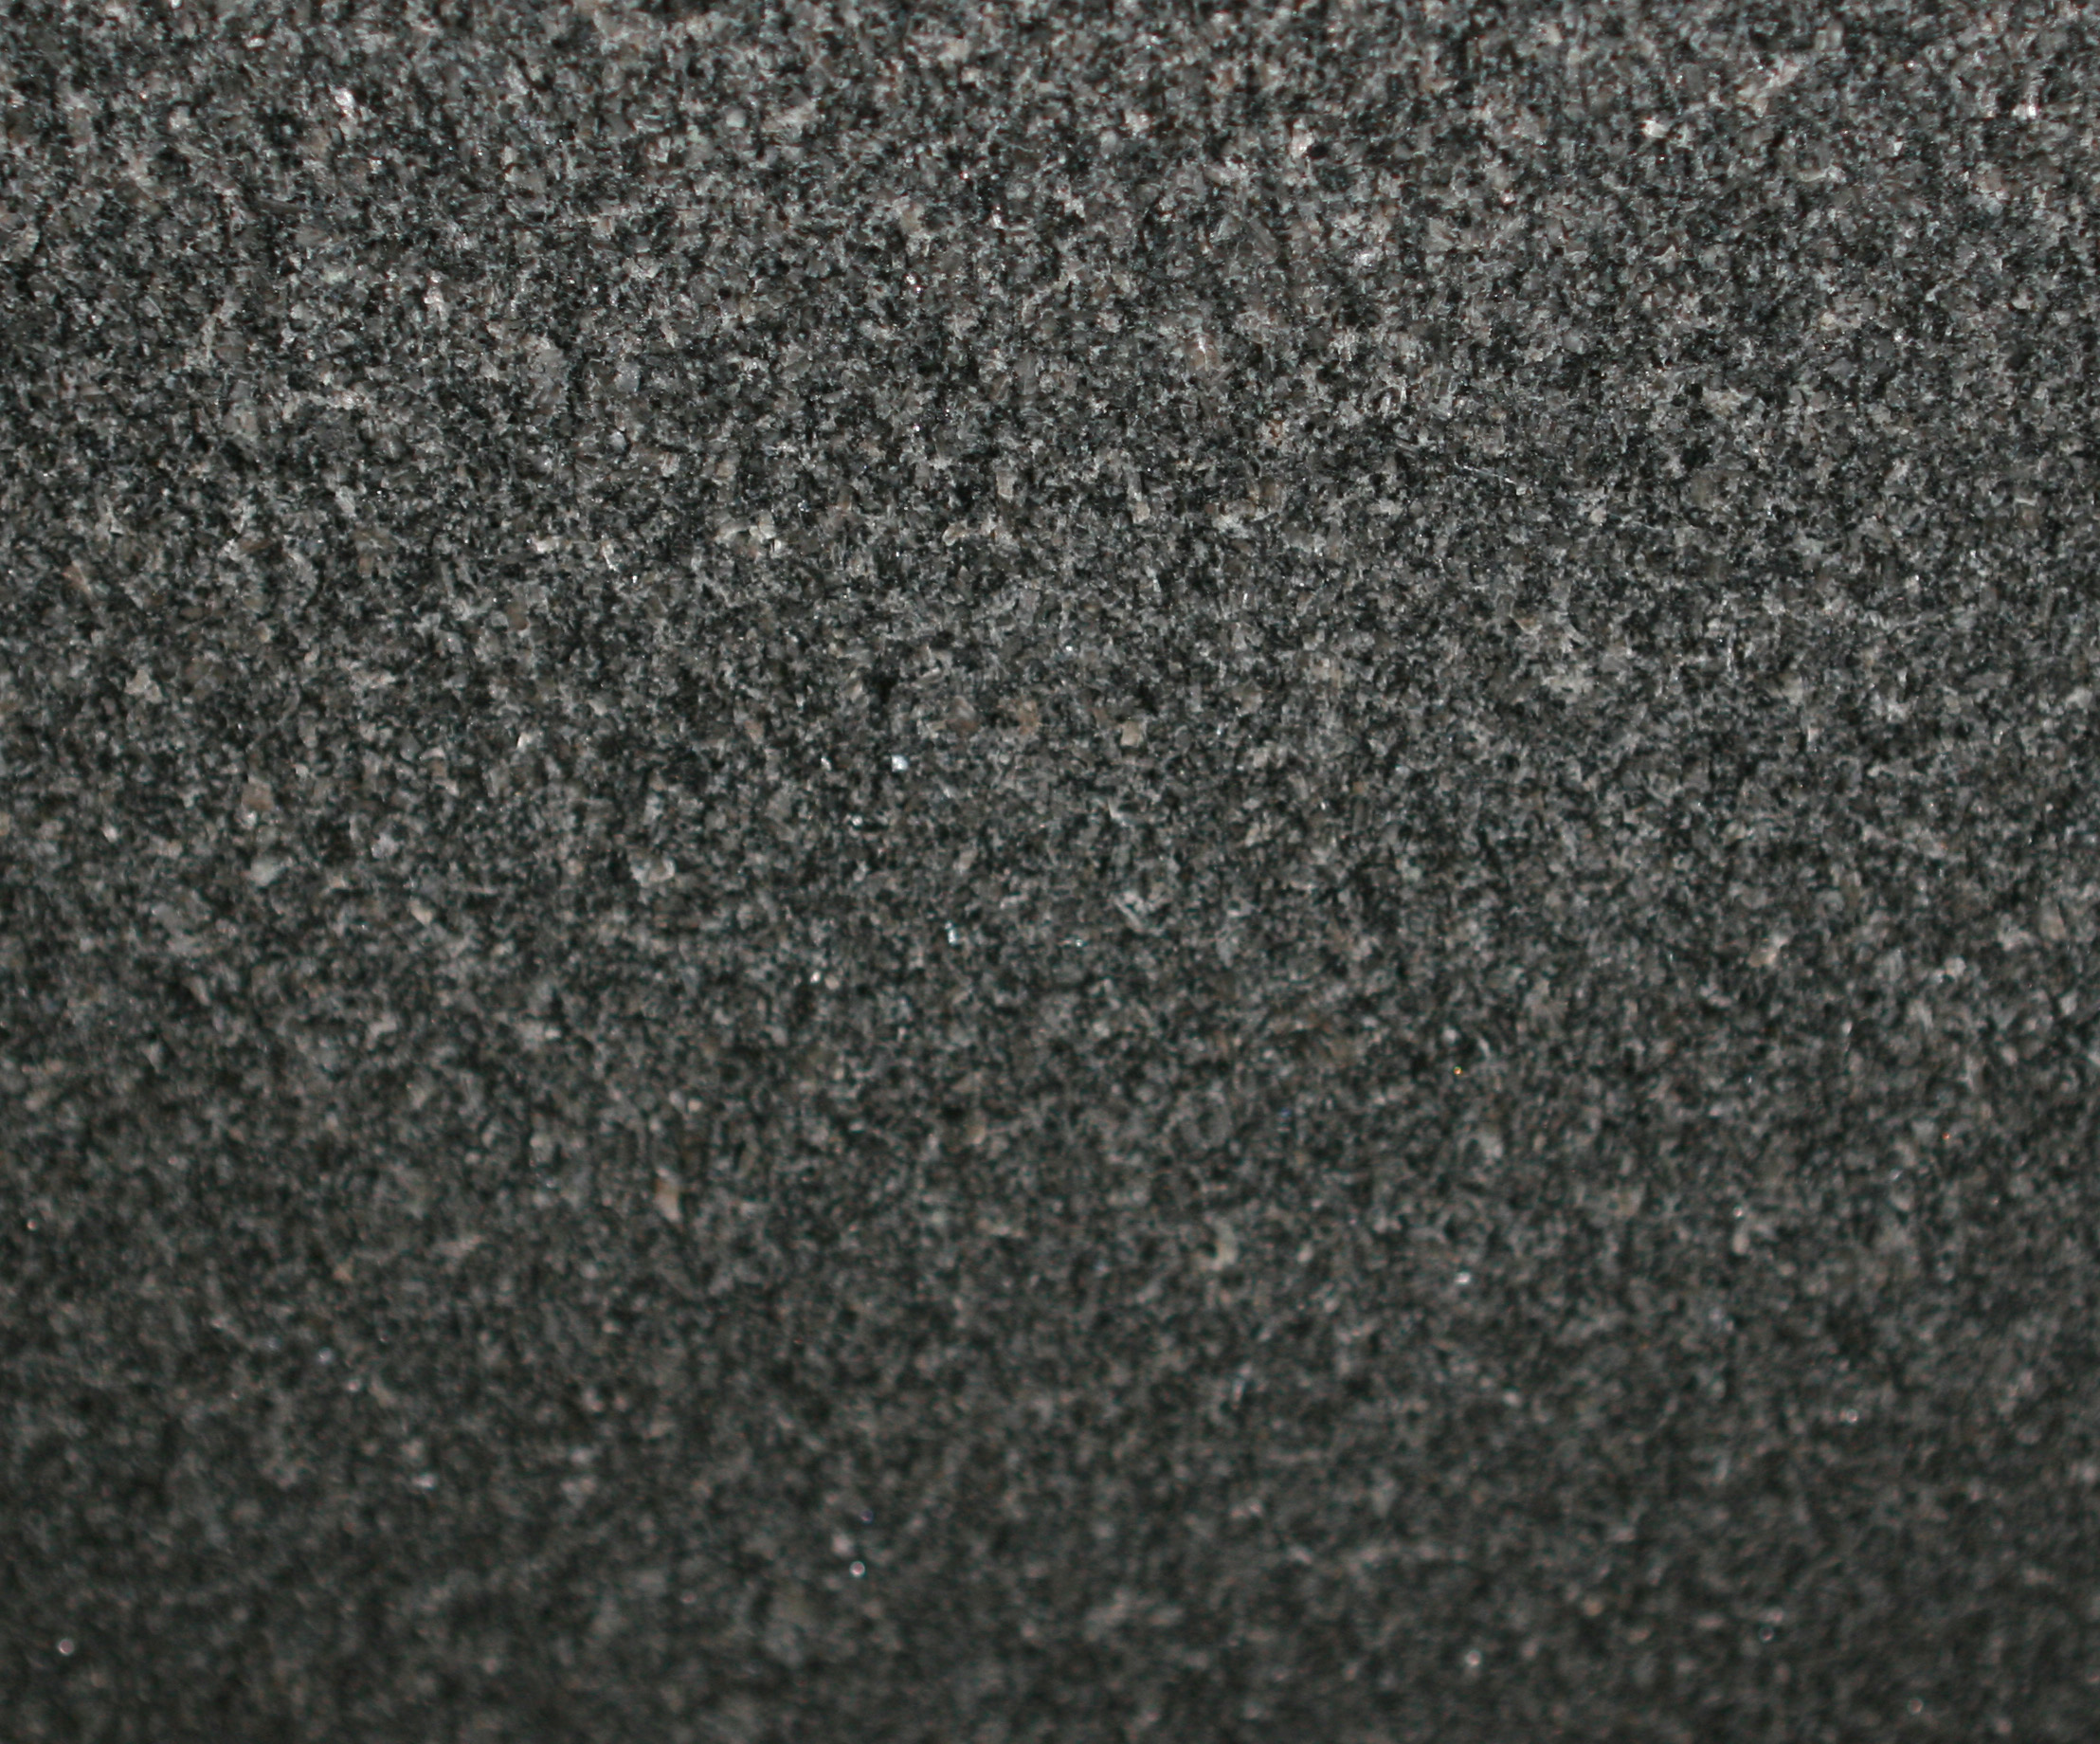 black granit texture texture granite download photo background. Black Bedroom Furniture Sets. Home Design Ideas